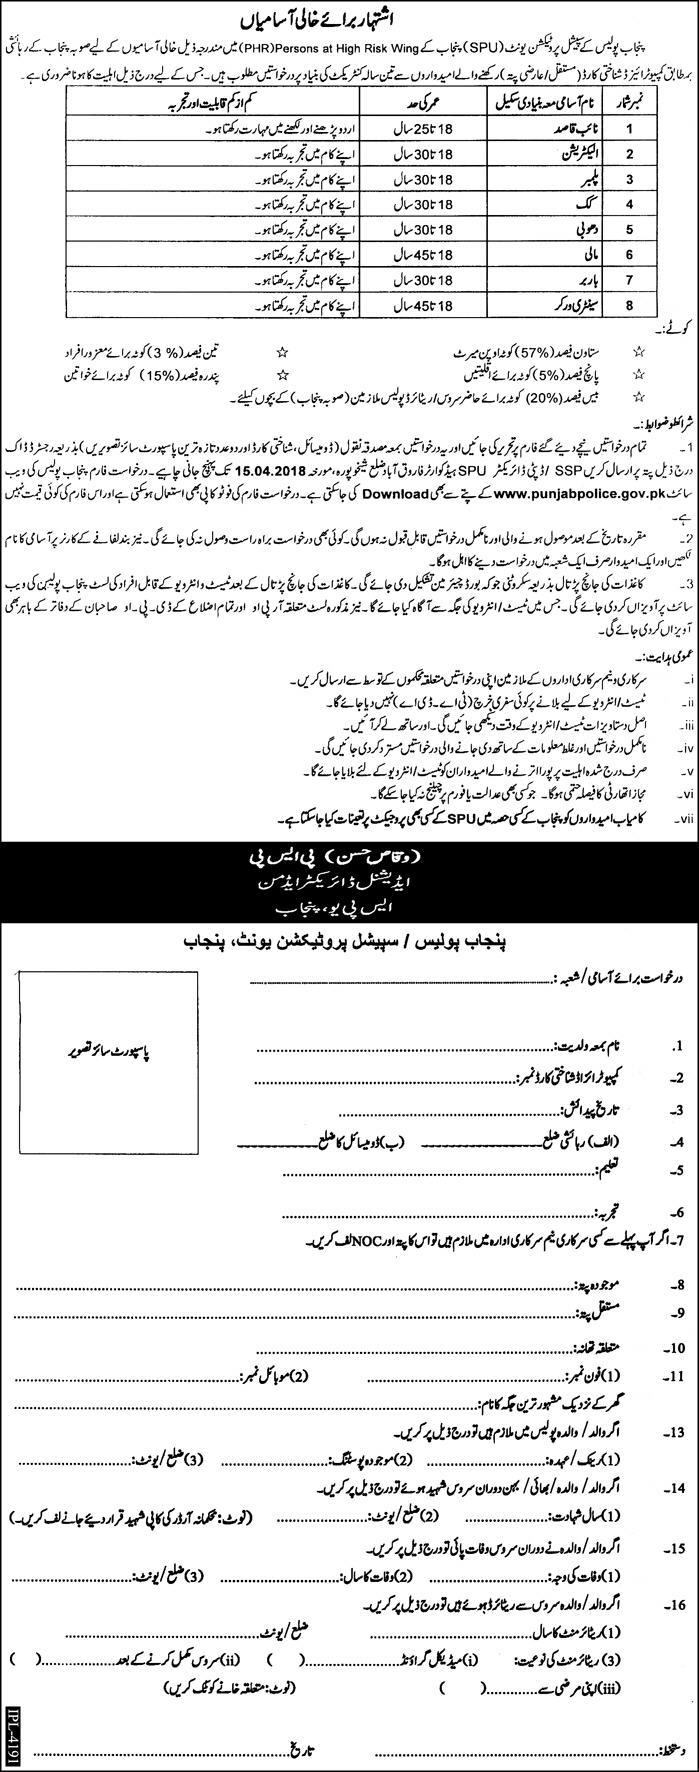 Special Protection Unit of Punjab Police New Jobs Daily Express Newspaper 08 April 2018